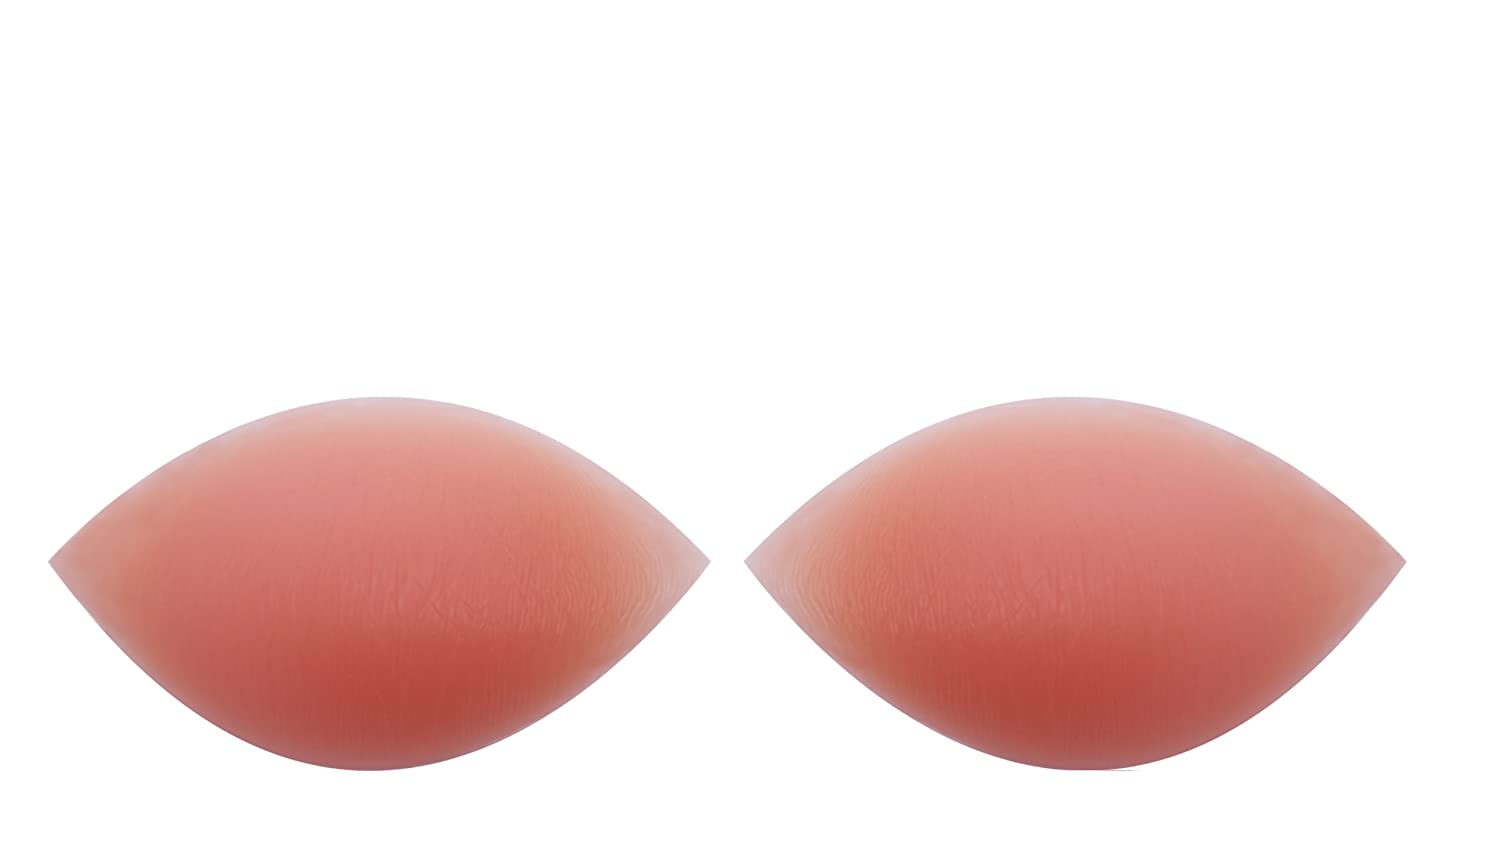 180g/pair - SODACODA Crescent Silicone Inserts Chicken Fillets Breast Enhancers For Bras, Swimsuits and Bikini – Create maximum cleavage - suitable for A, B, C and D Cups C and D Cups (180g/pair Clear) GER-180g